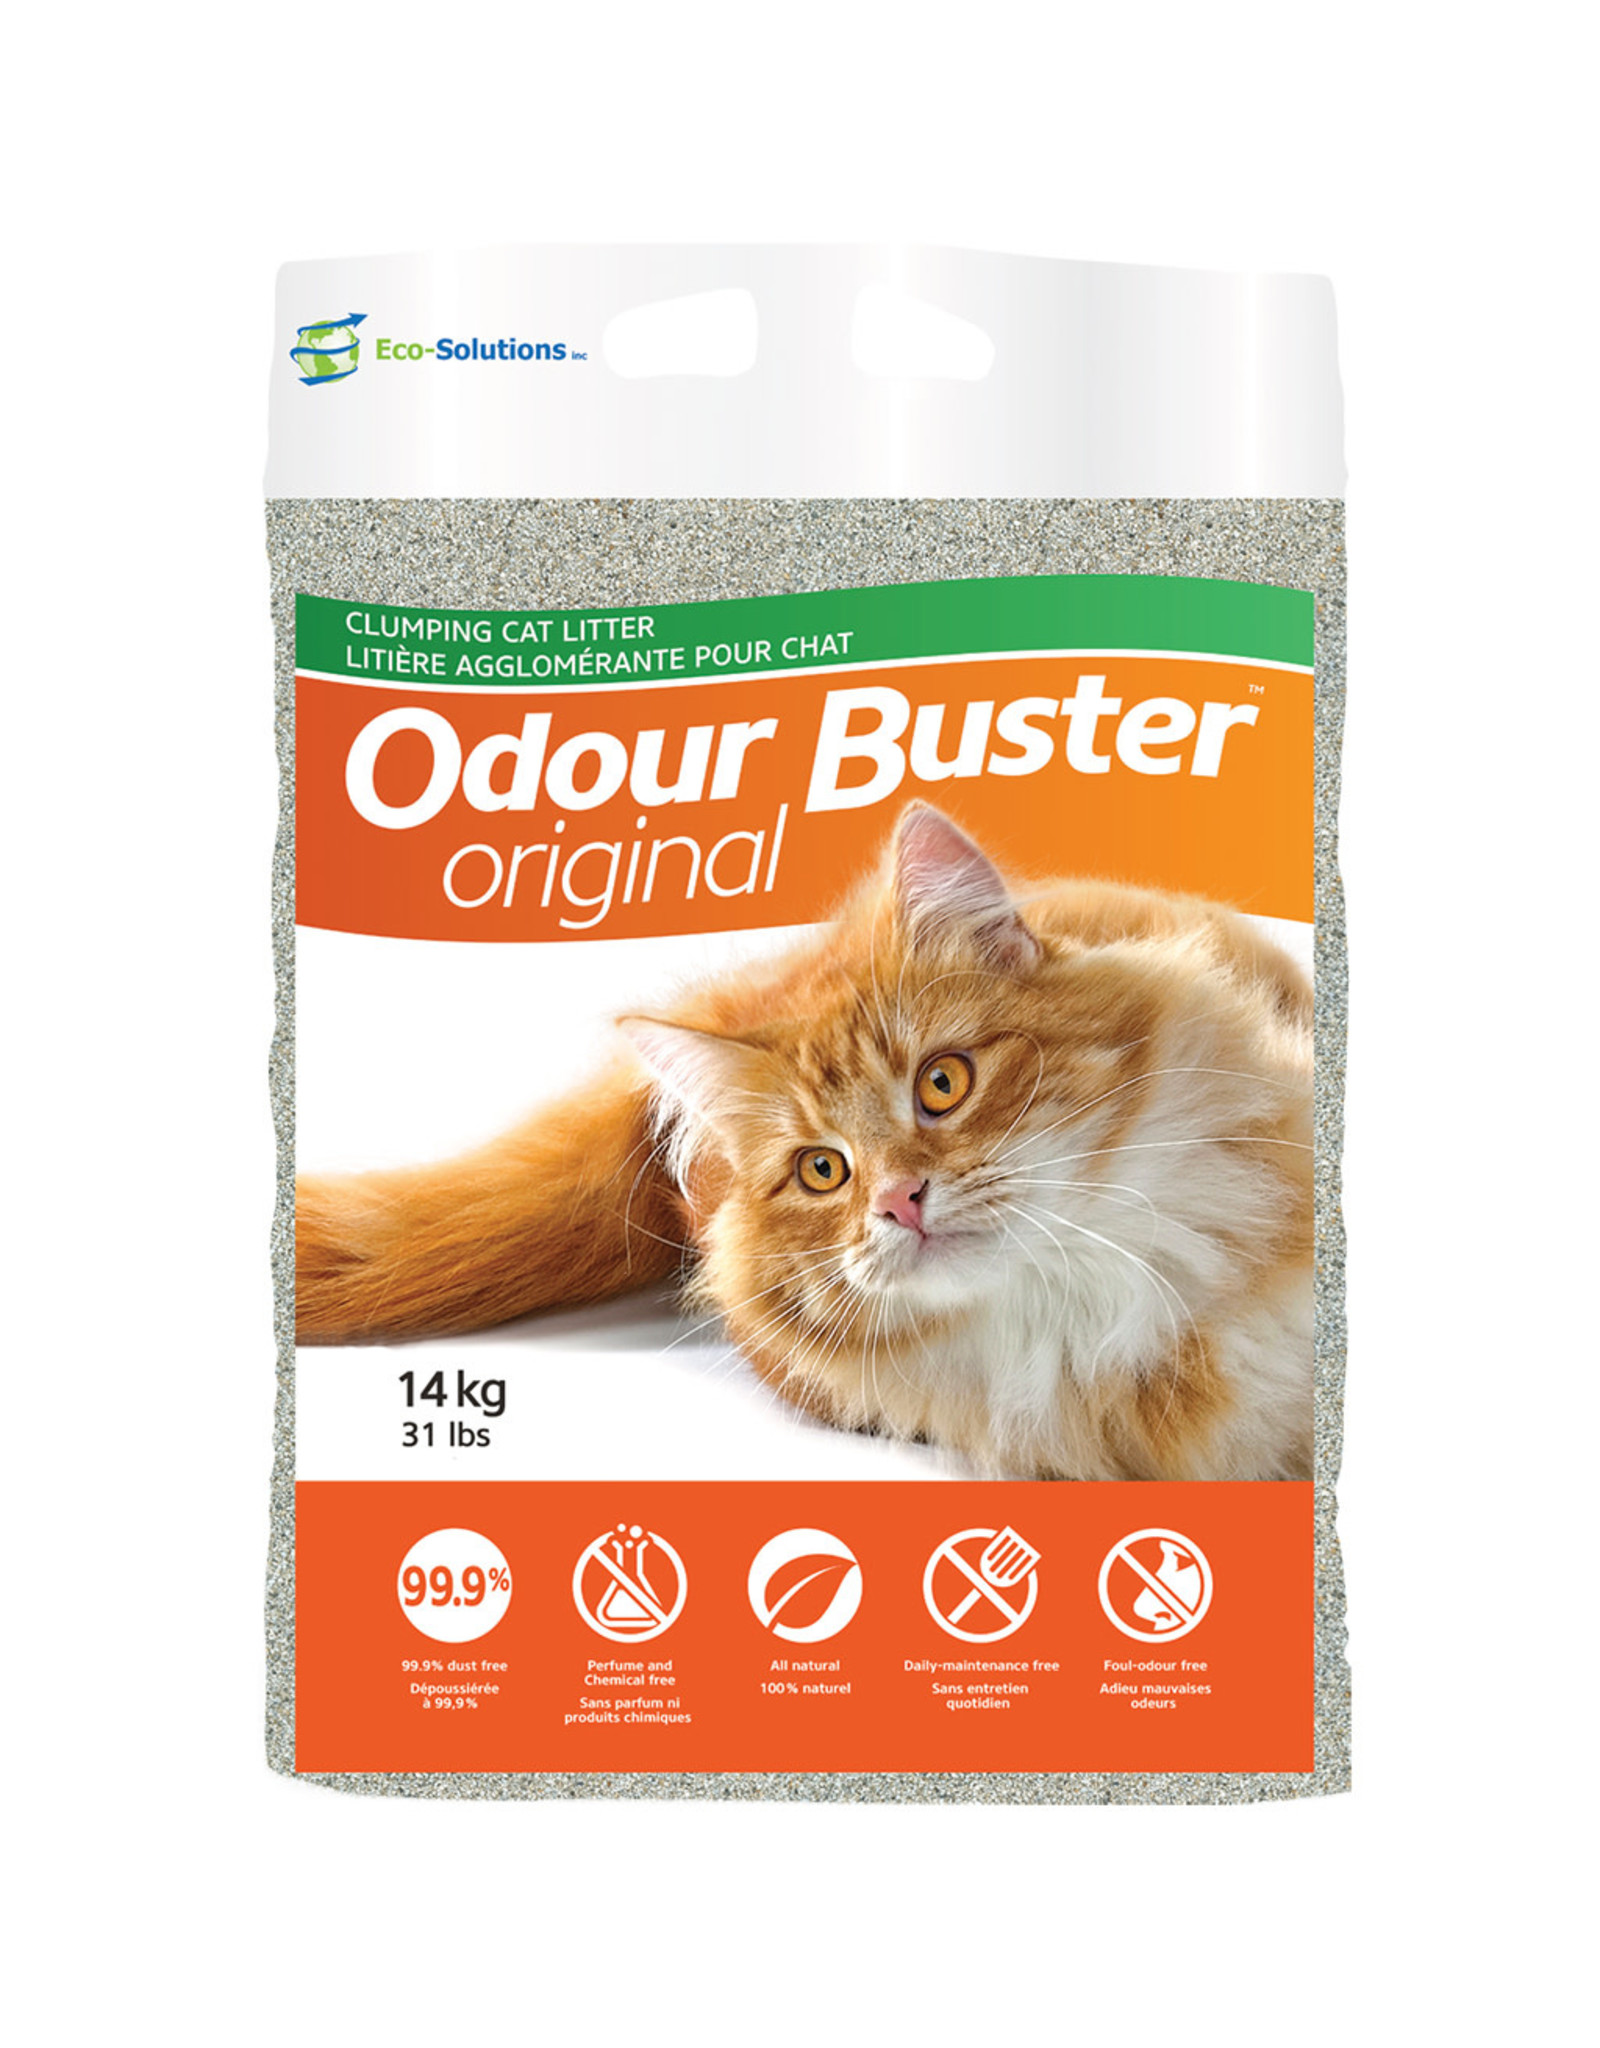 Eco-Solutions Eco-Solutions - Odour Buster Original Litter 14kg